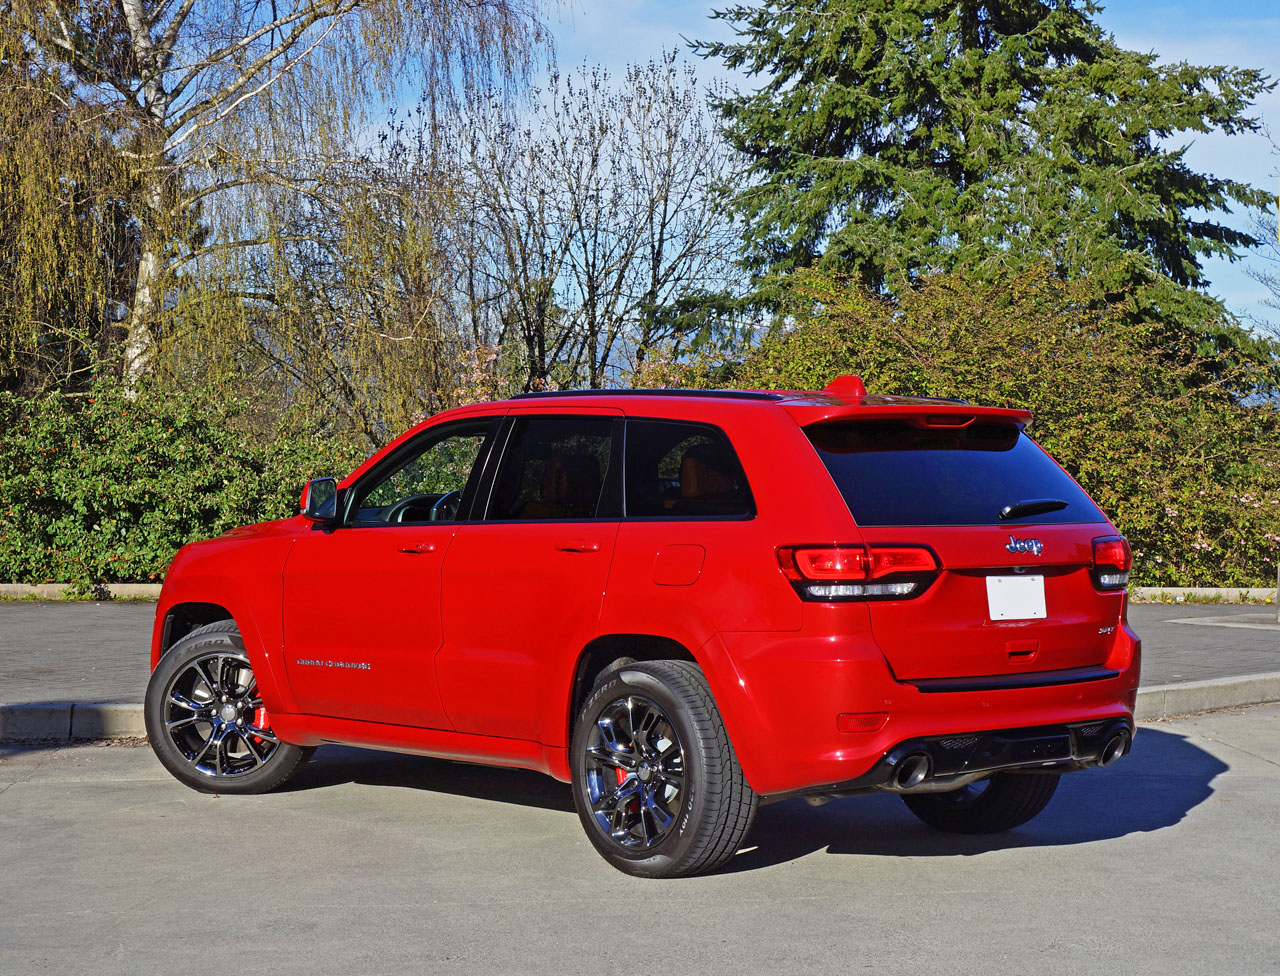 2016 jeep grand cherokee srt road test review the car magazine. Black Bedroom Furniture Sets. Home Design Ideas